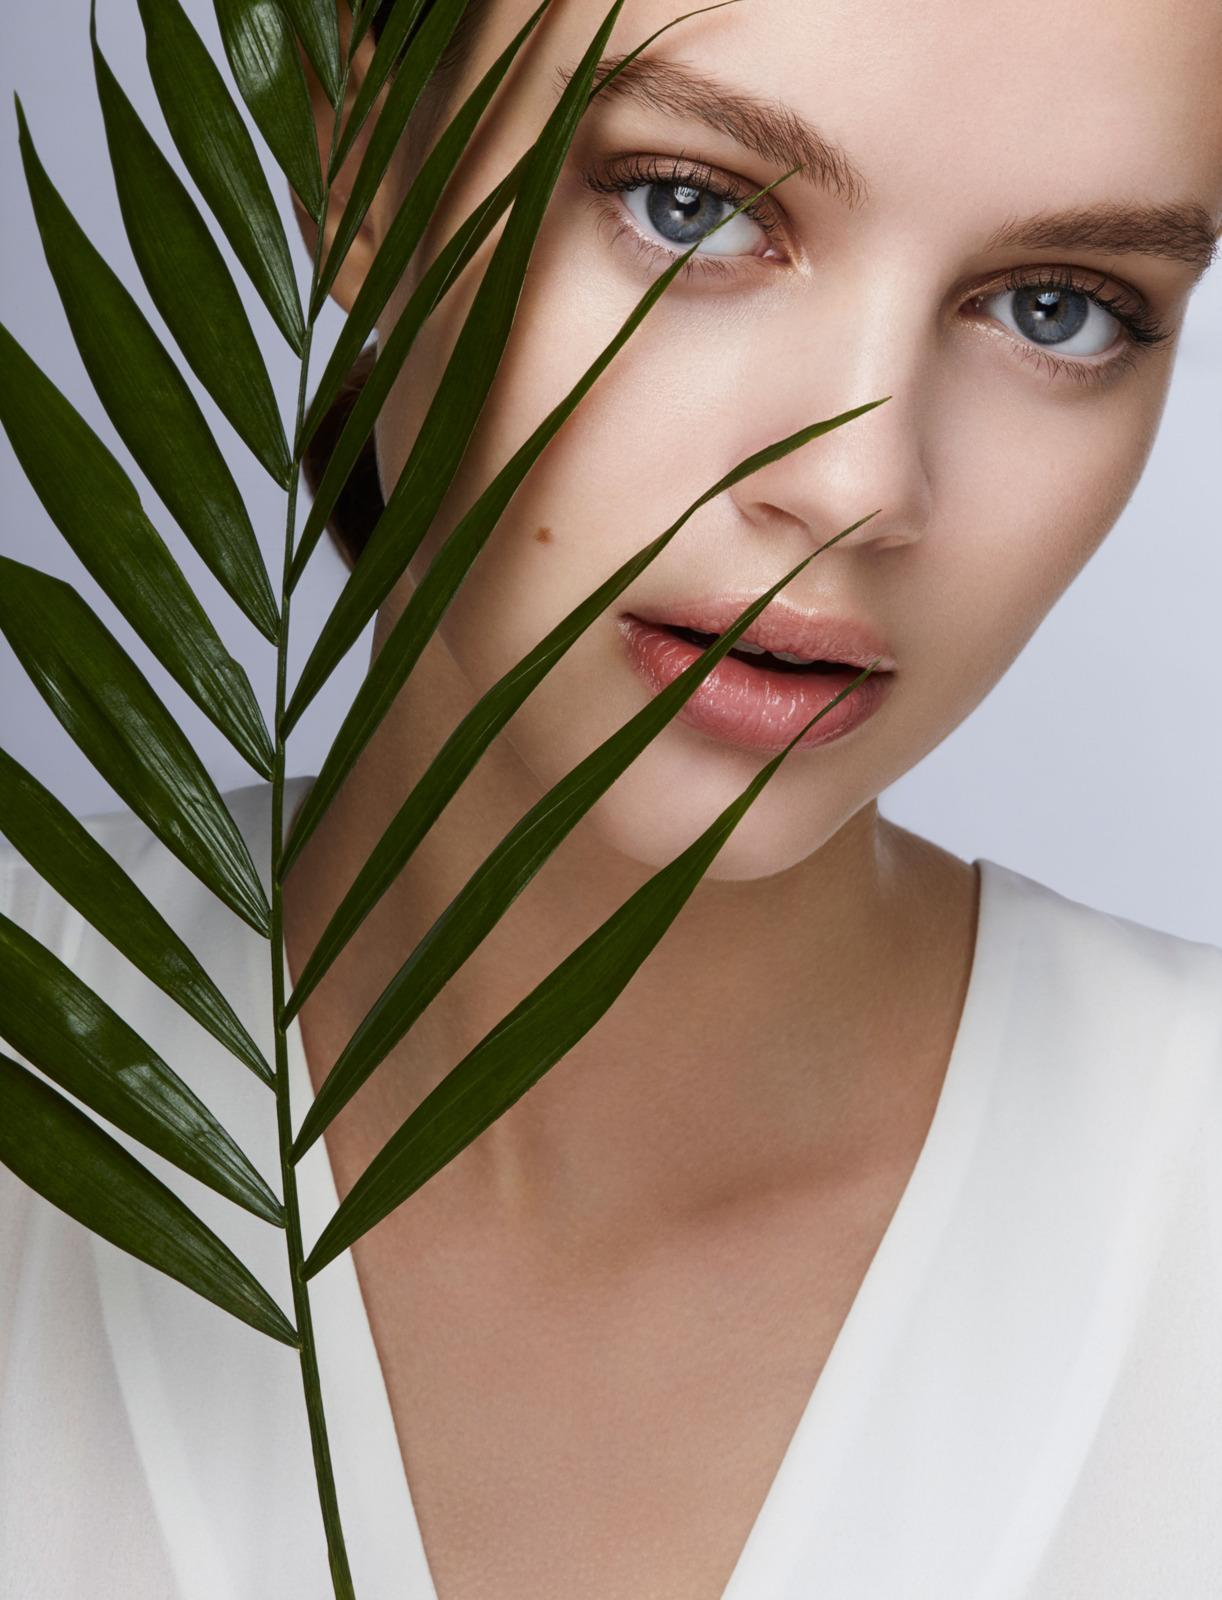 Everything You Need to Know About 'Natural' Skin Care and ...